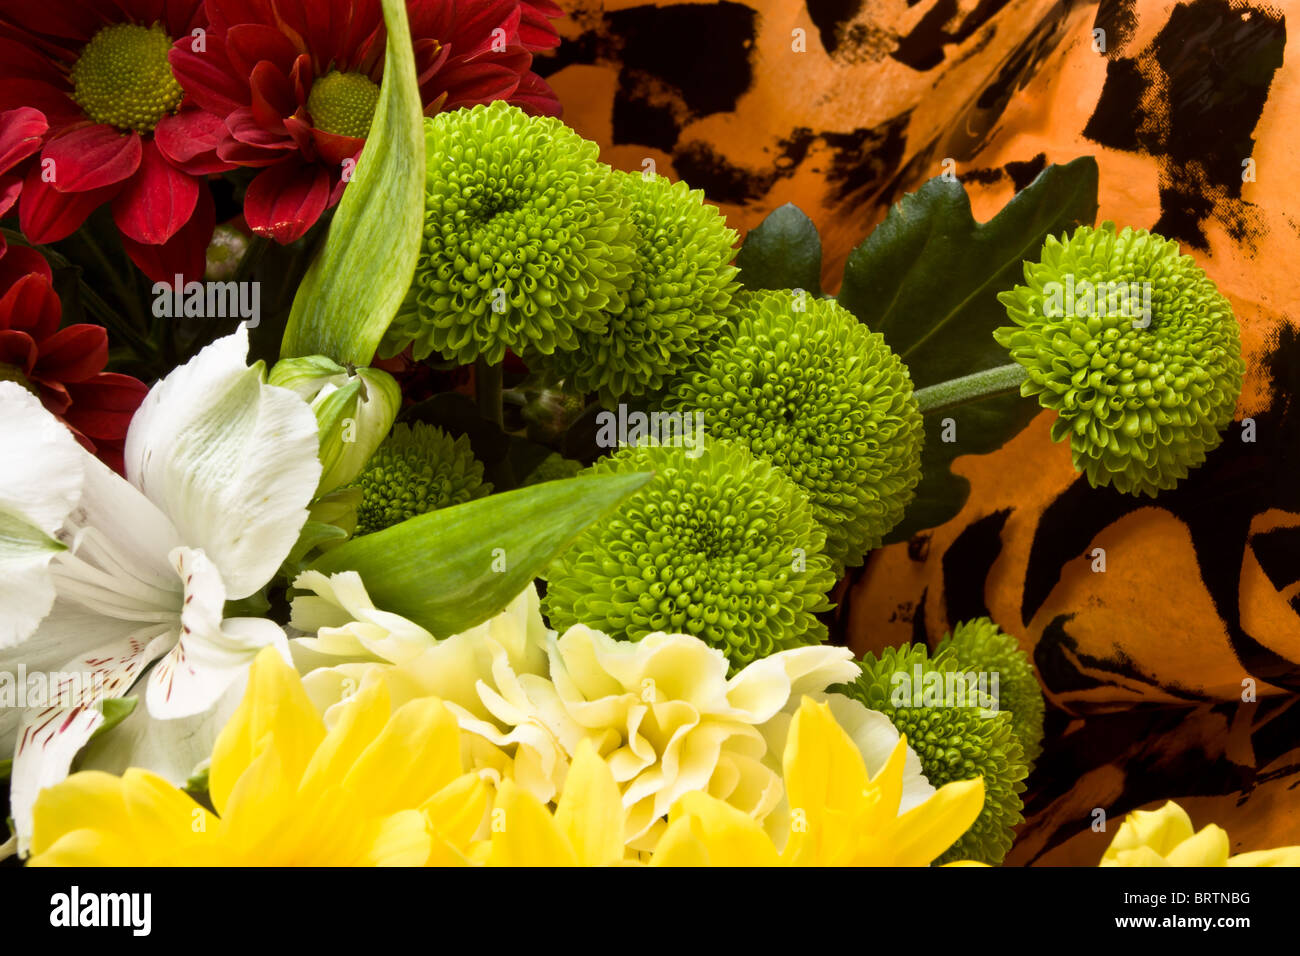 Flowers wrapped in cellophane stock photos flowers wrapped in close up background of beautiful flower bouquet wrapped in cellophane stock image mightylinksfo